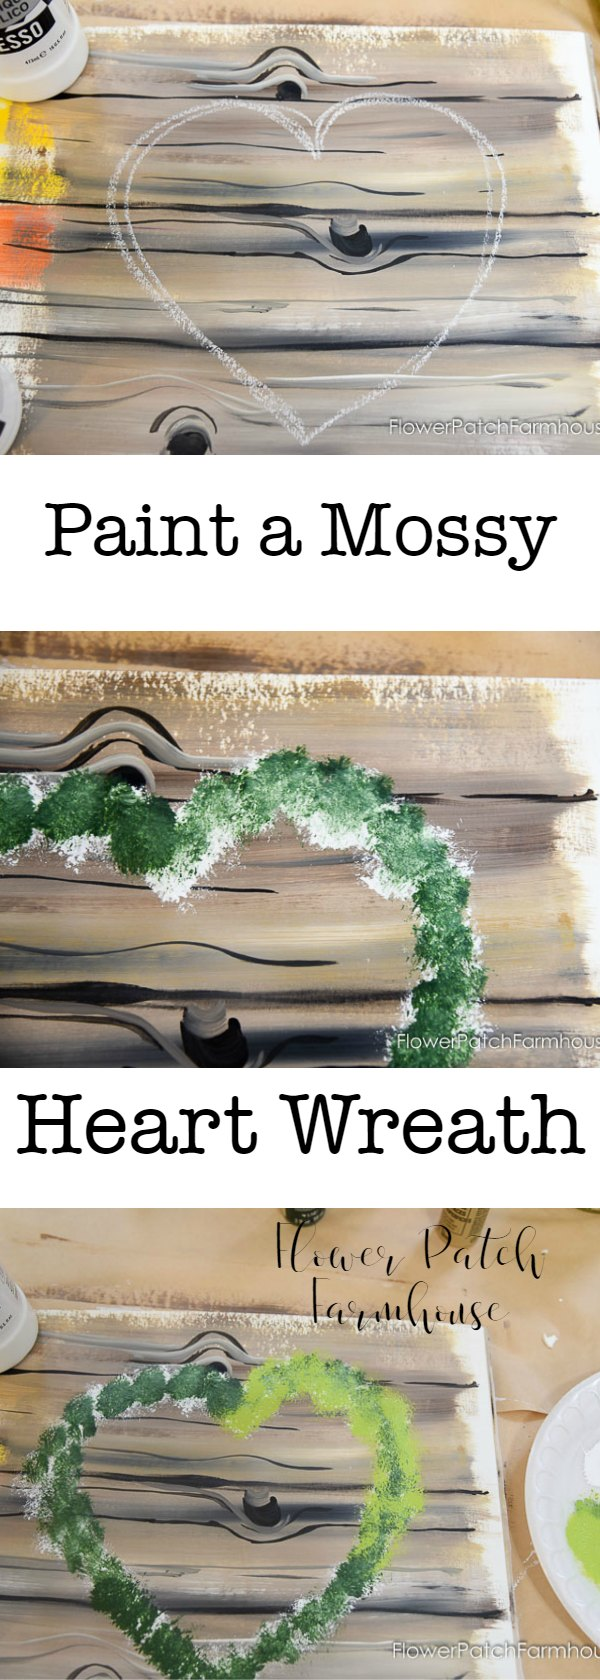 Learn how to paint a Mossy Heart Wreath in acrylics.  Step by step free tutorial with video.  Create this fun wreath then add flowers of your choice.  An easy beginner lesson.